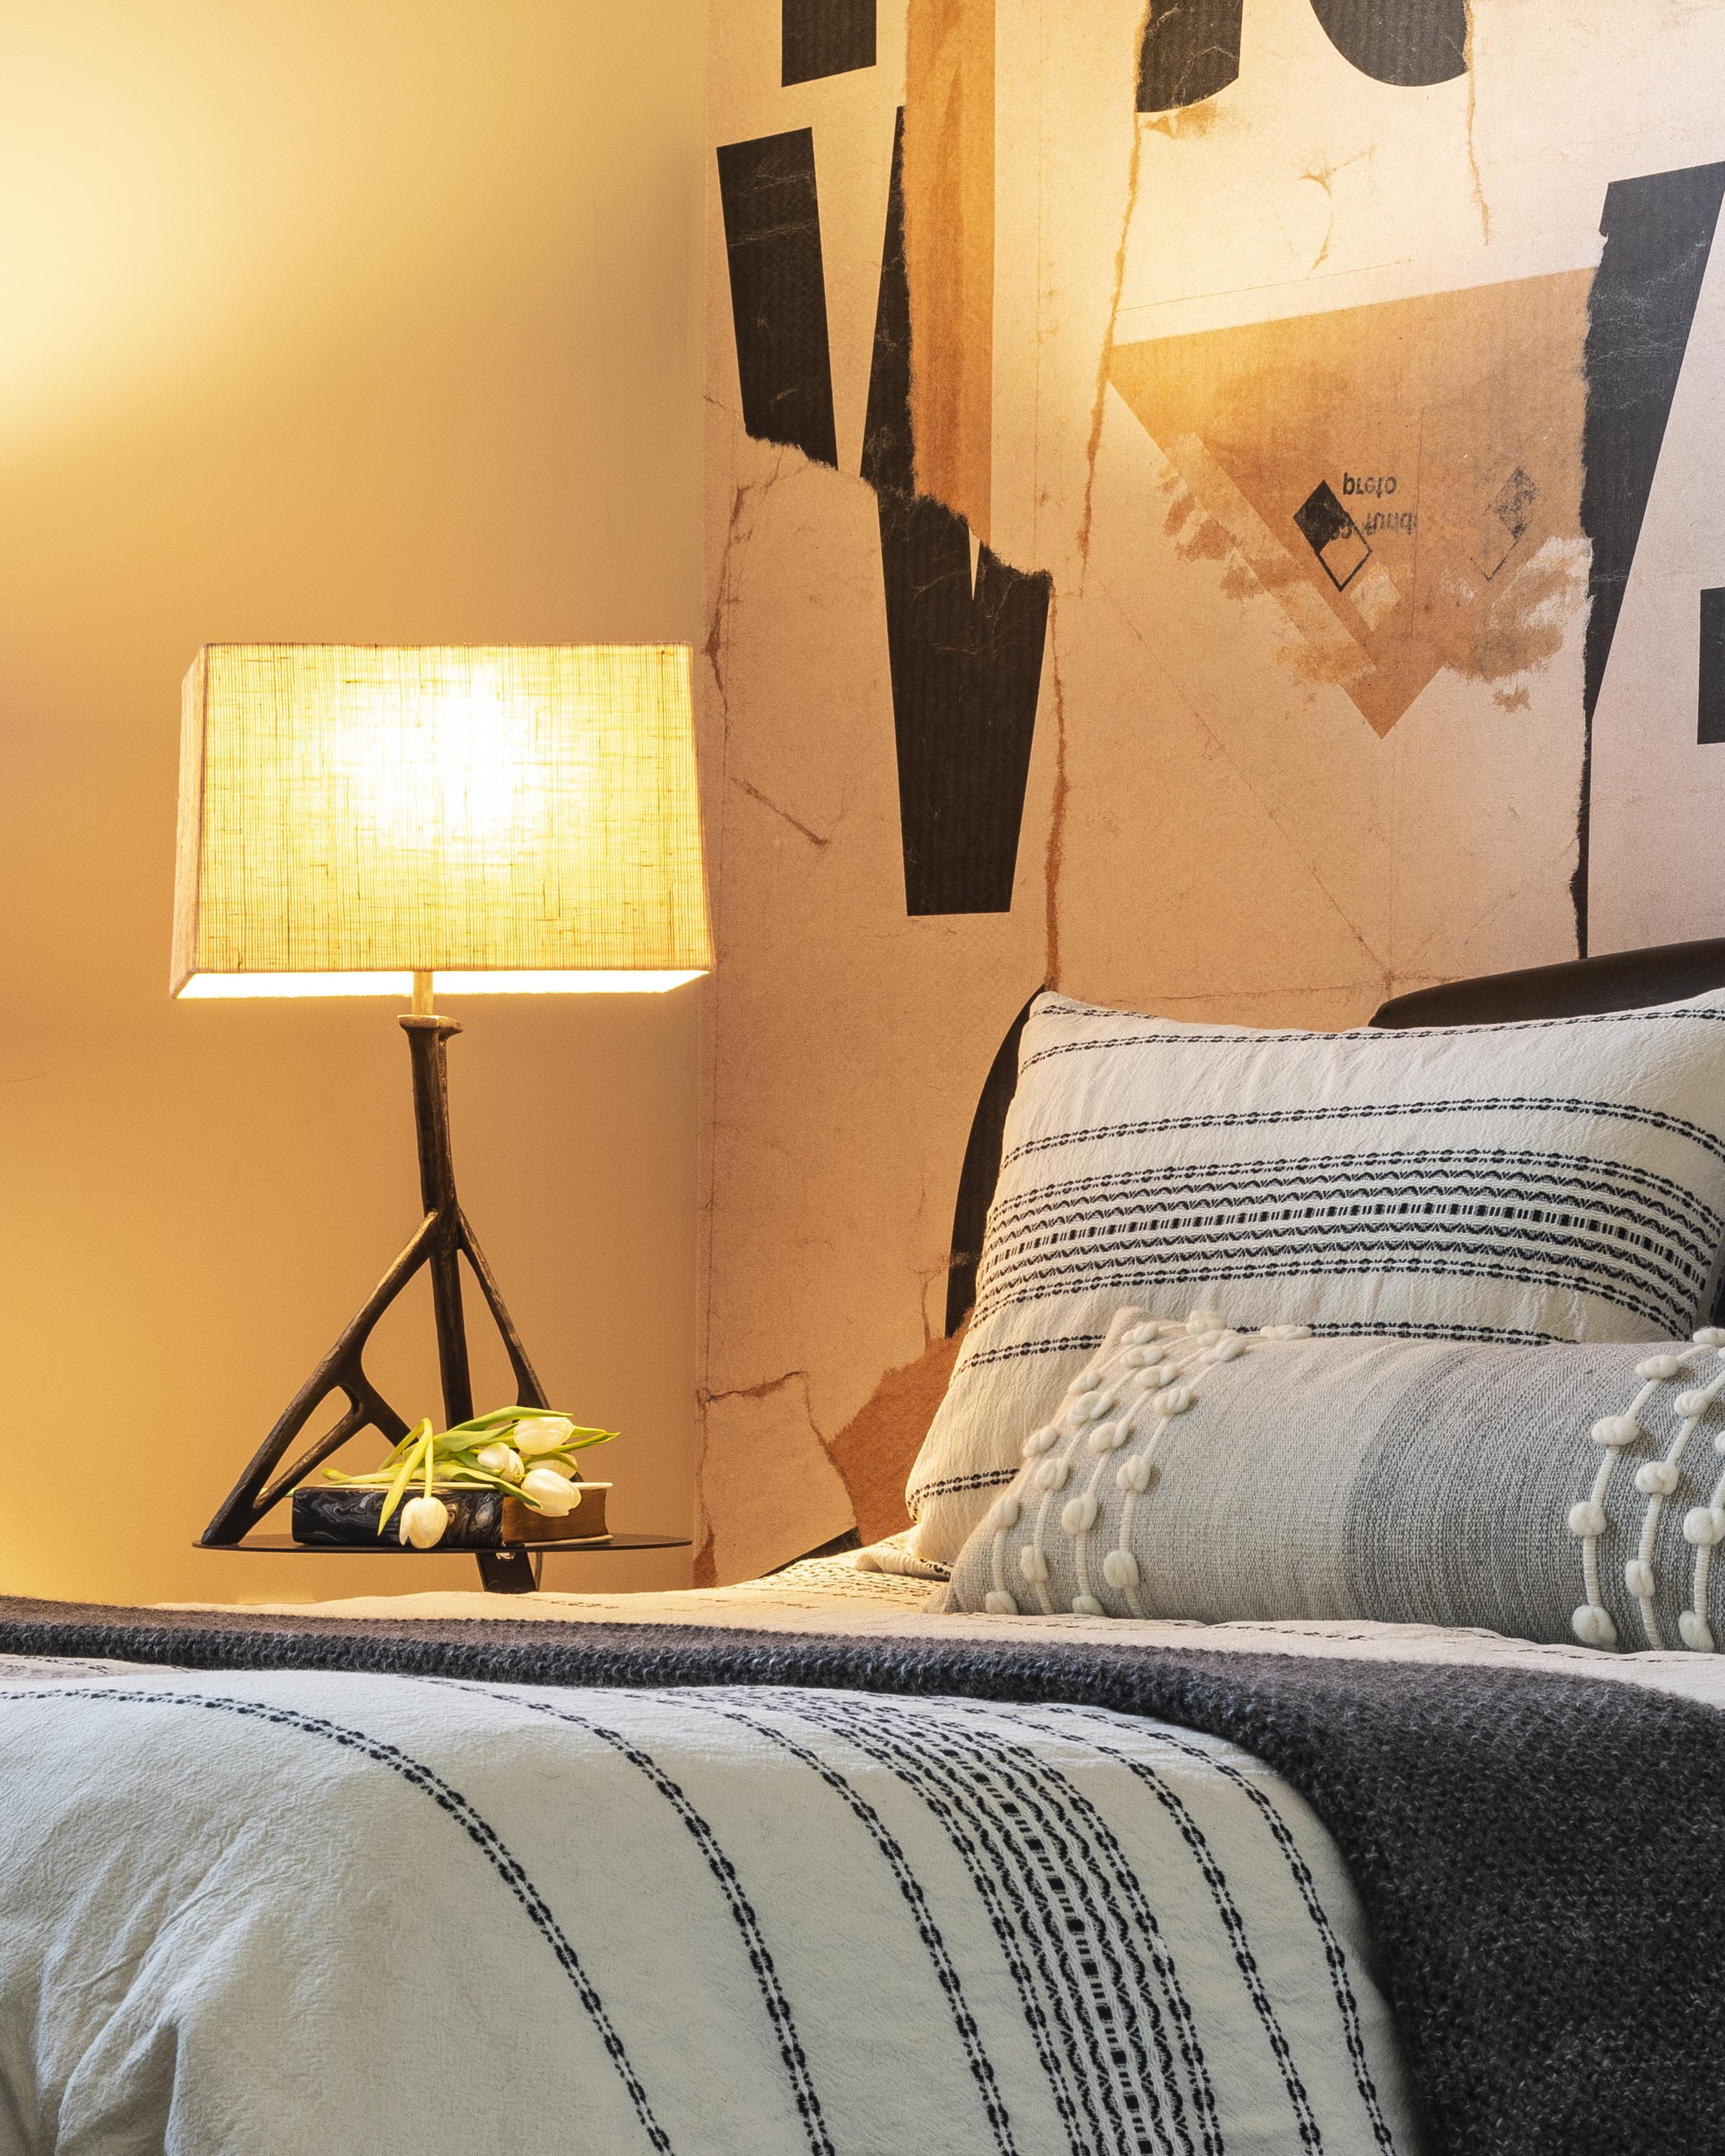 Bedroom with bed and table lamp